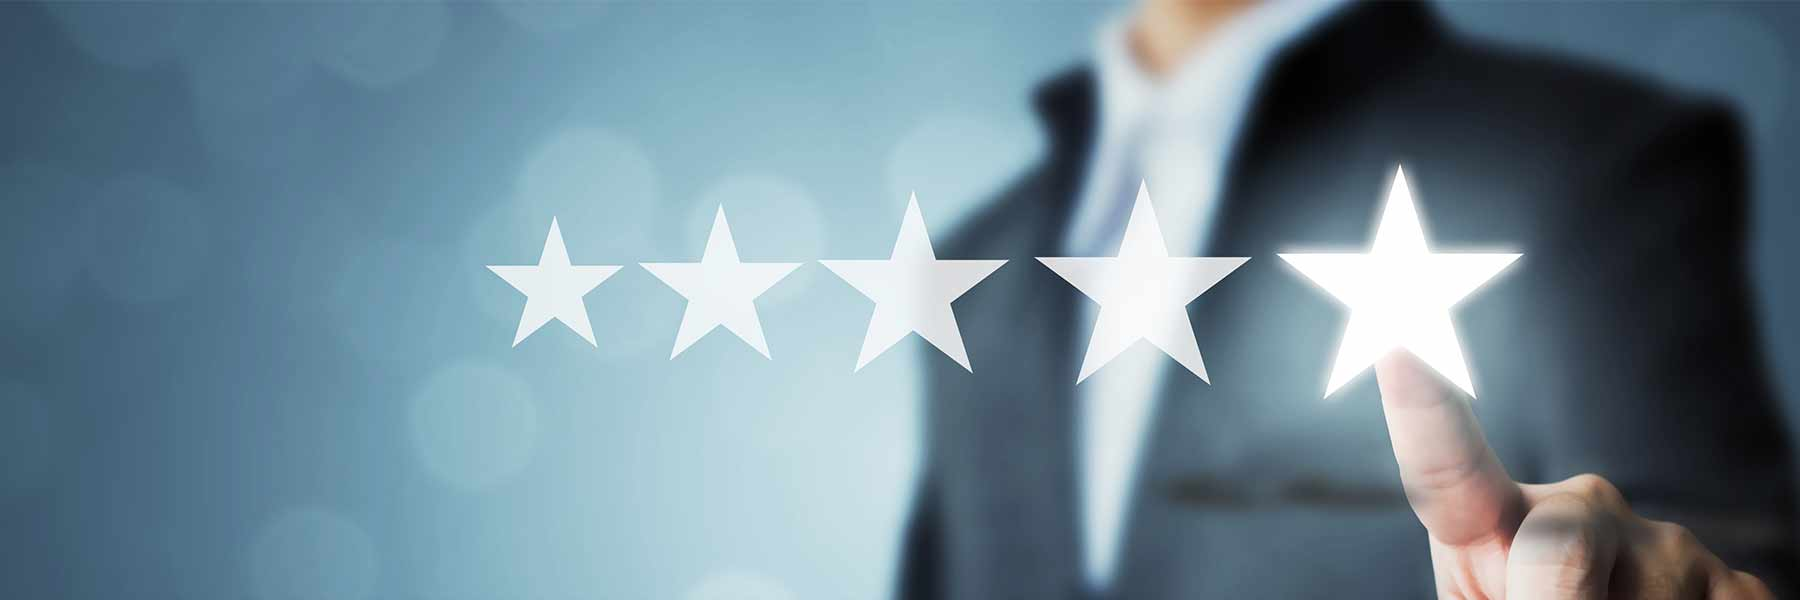 Outpost Realty Testimonials and Reviews